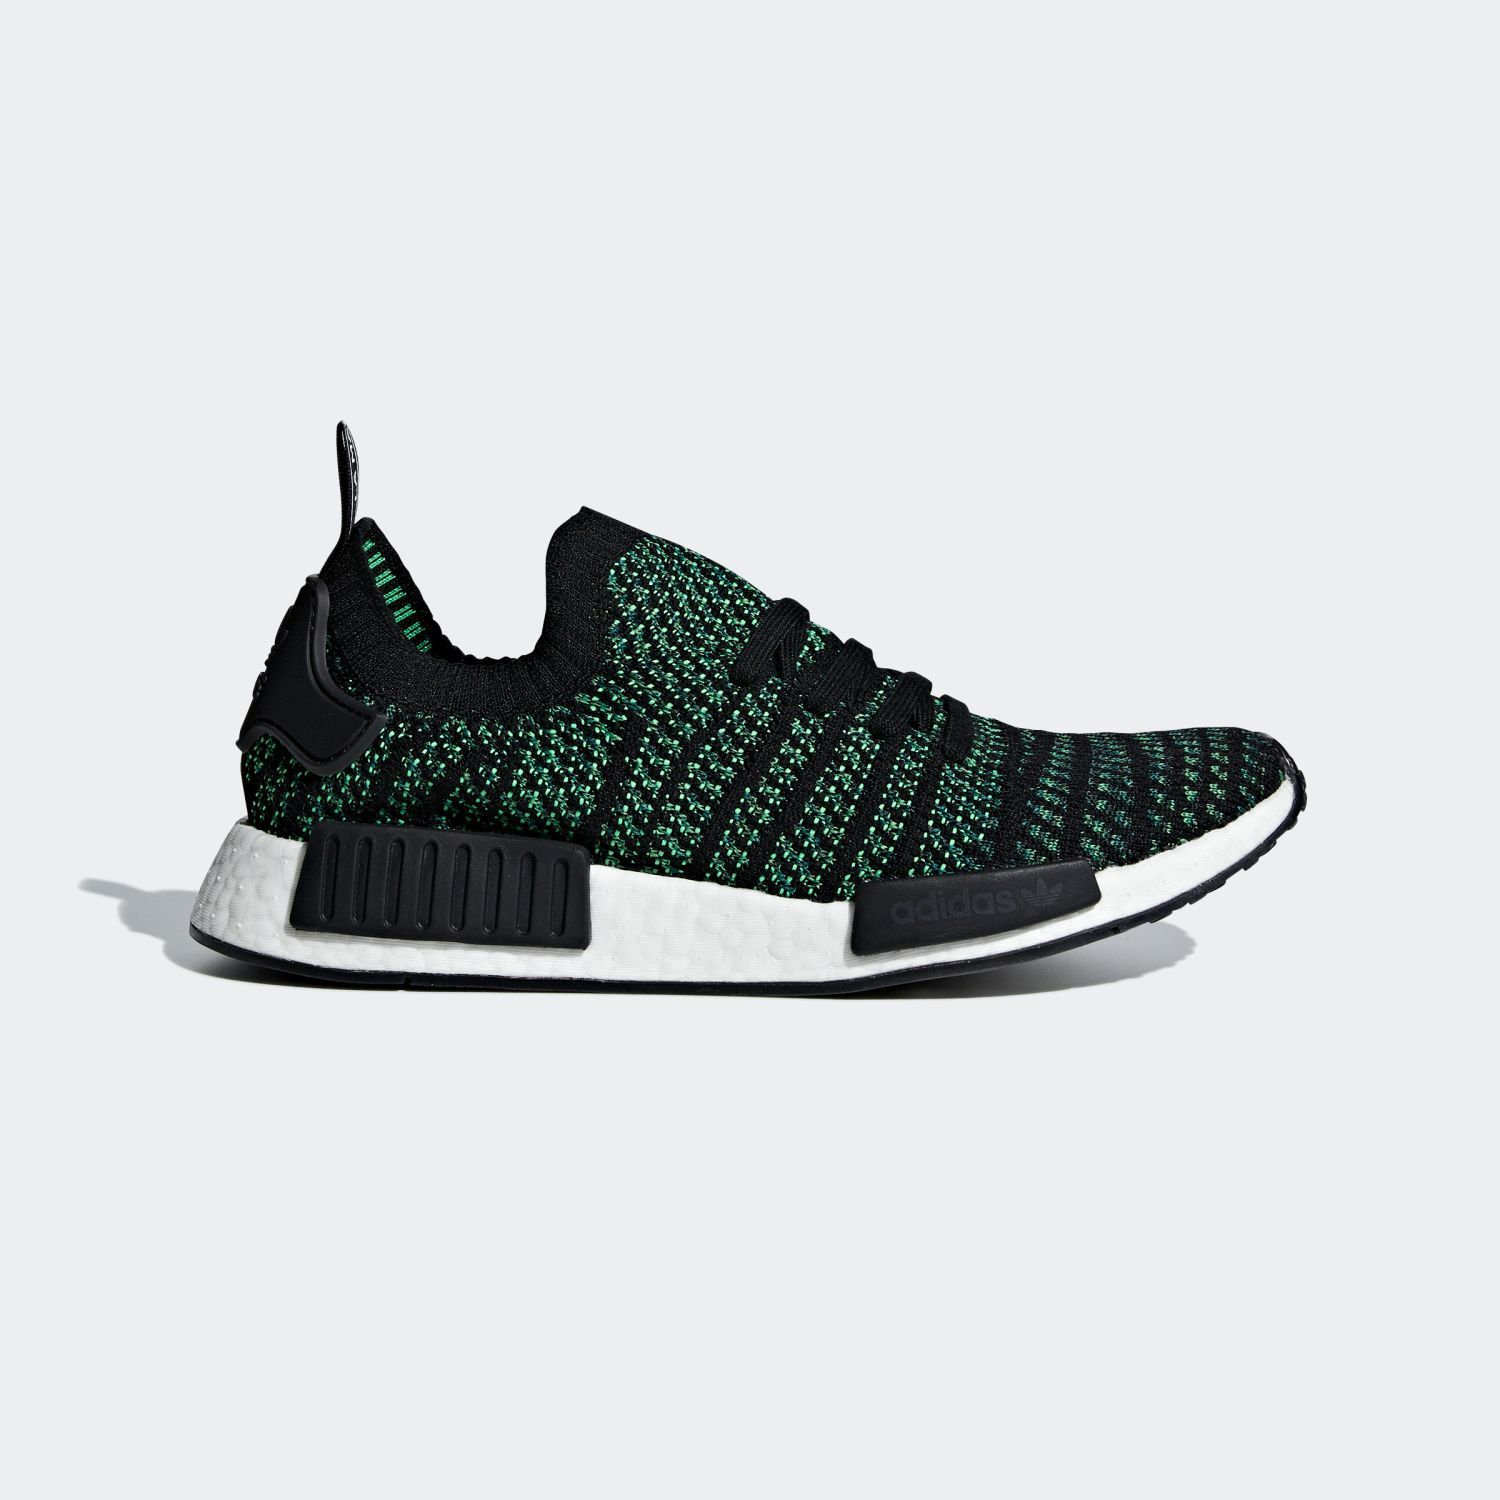 NMD R1 STLT Stealth Pack Noble Green